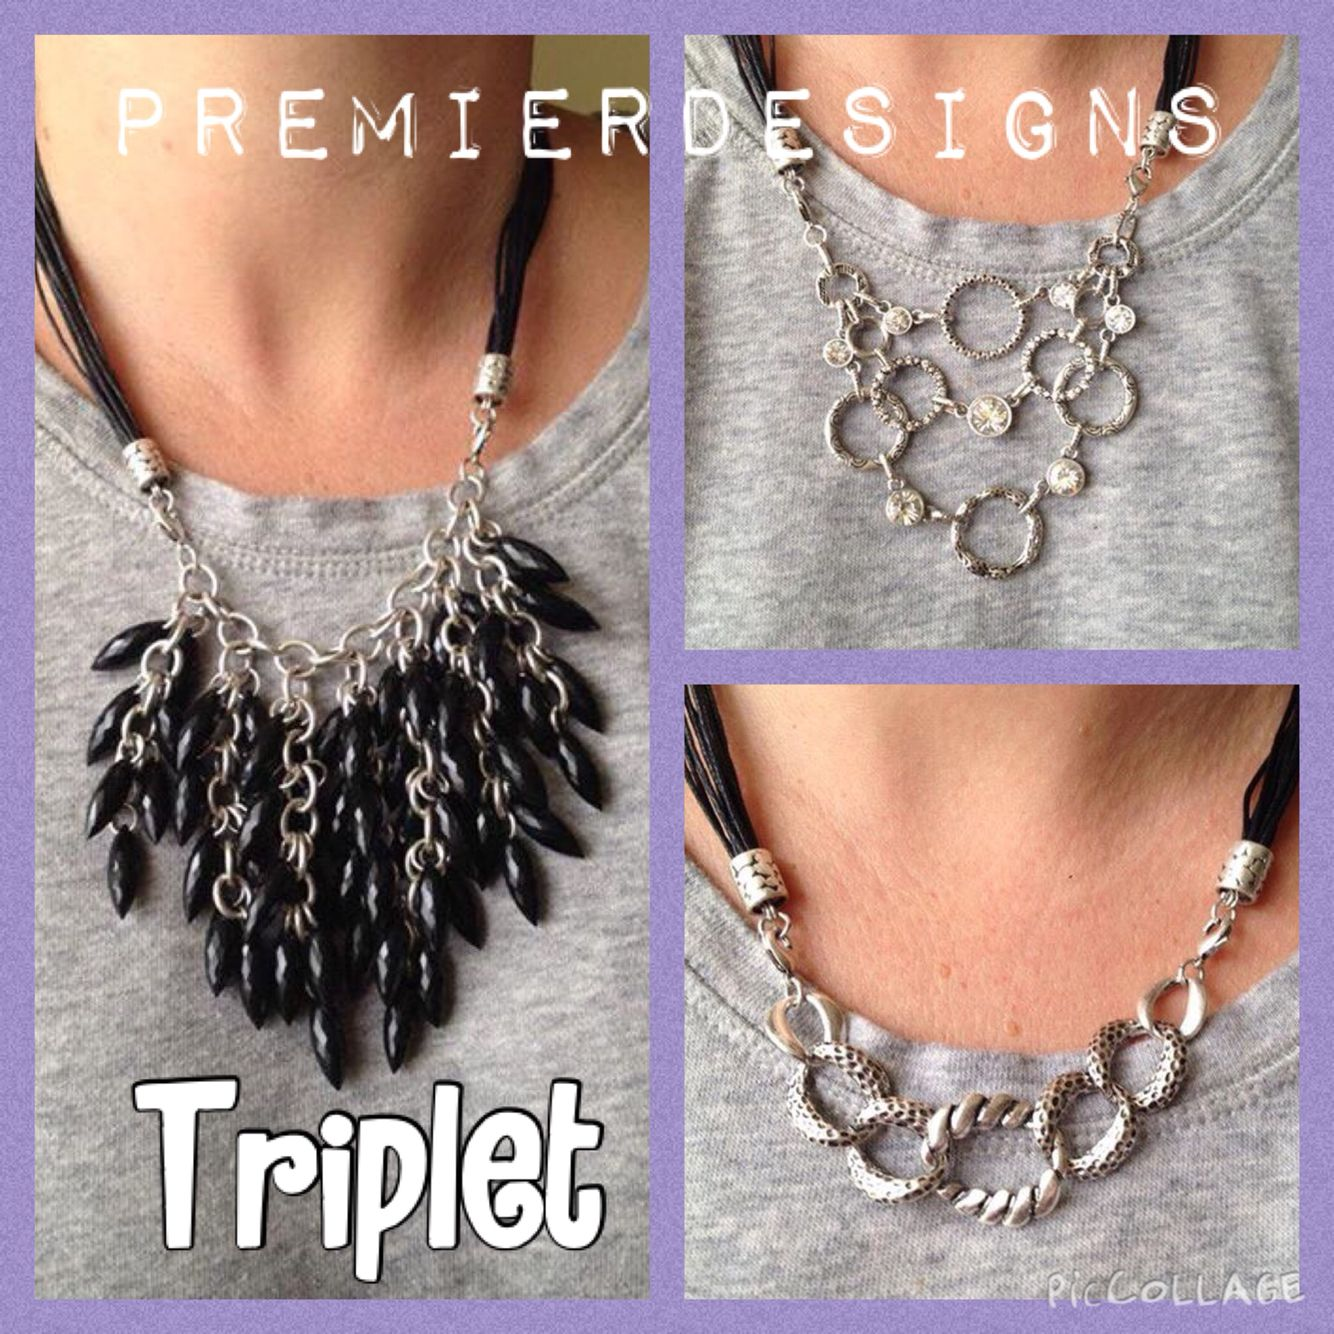 Premier designs jewelry 2015 - One Of Premier Designs New Pieces From Our 2015 2016 Collection One